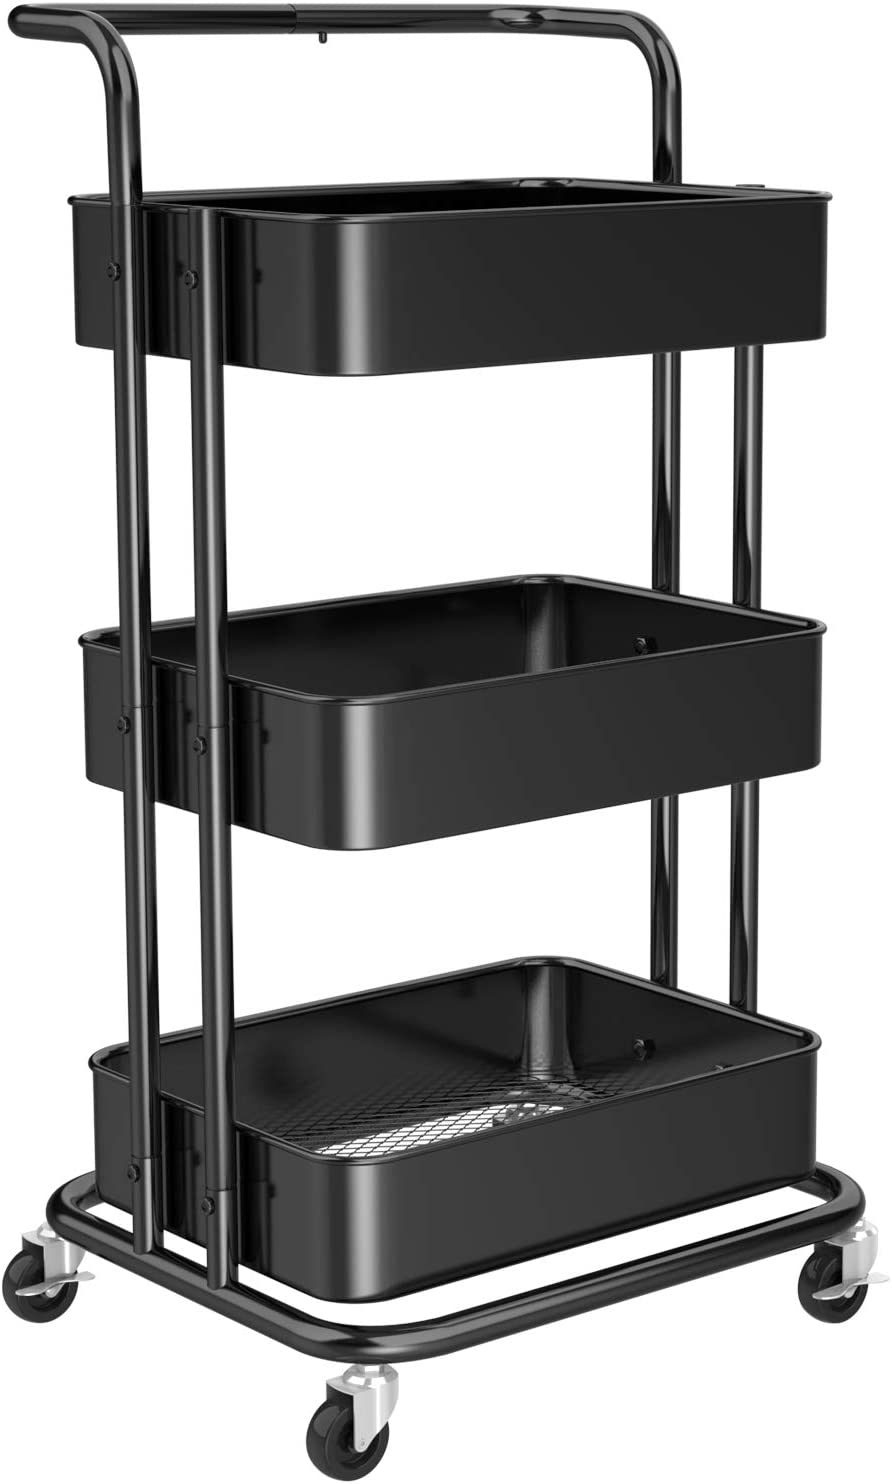 3 Tier Mesh Utility Cart, Rolling Metal Organization Cart with Handle and Lockable Wheels, Multifunctional Storage Shelves for Kitchen Living Room Office by Pipishell, Black